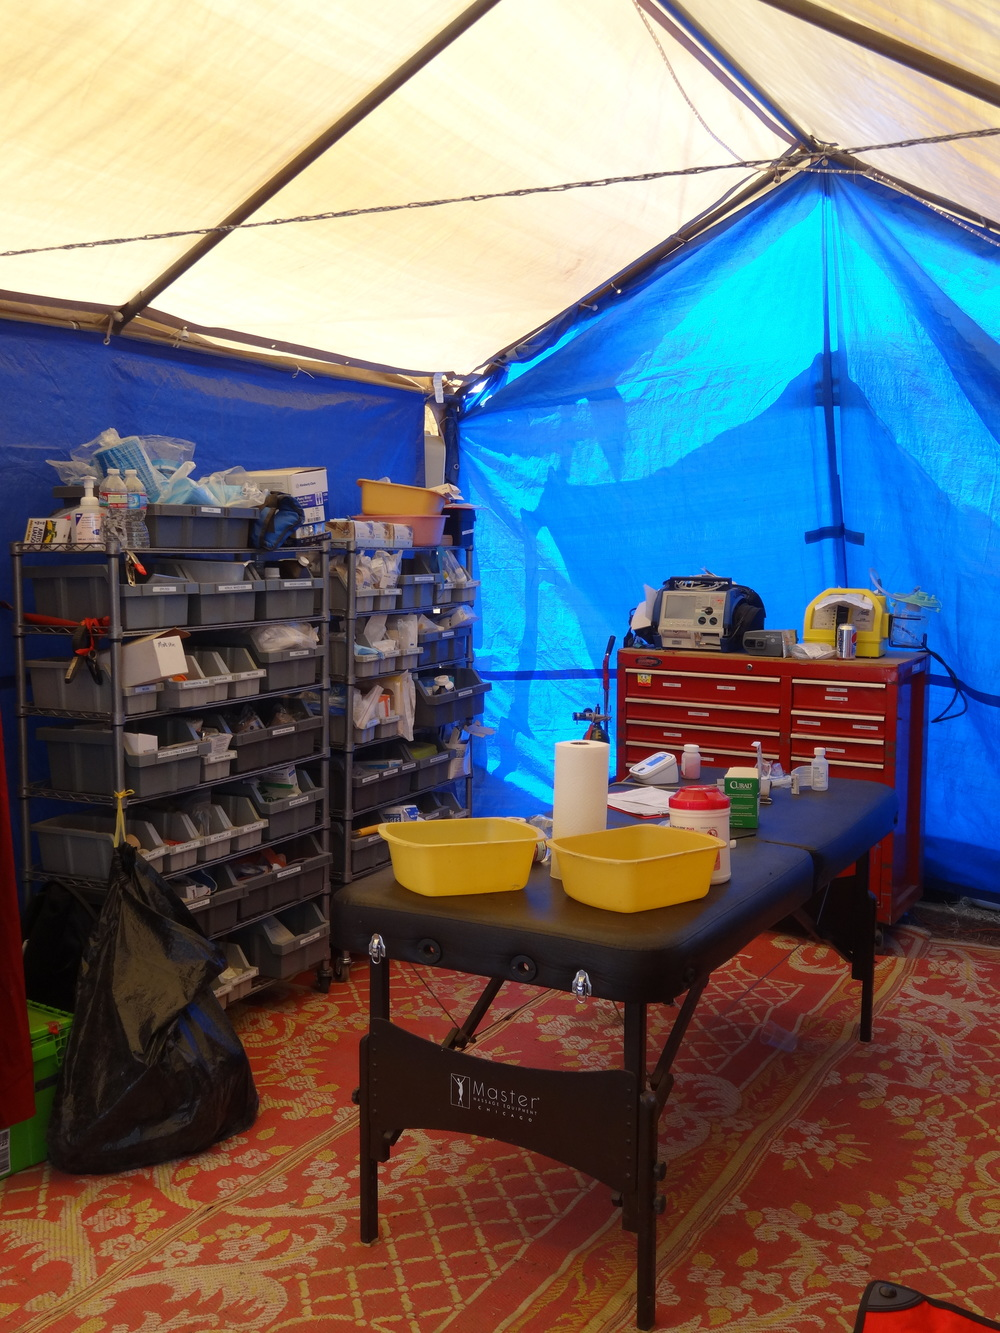 Medical facilities at a festival